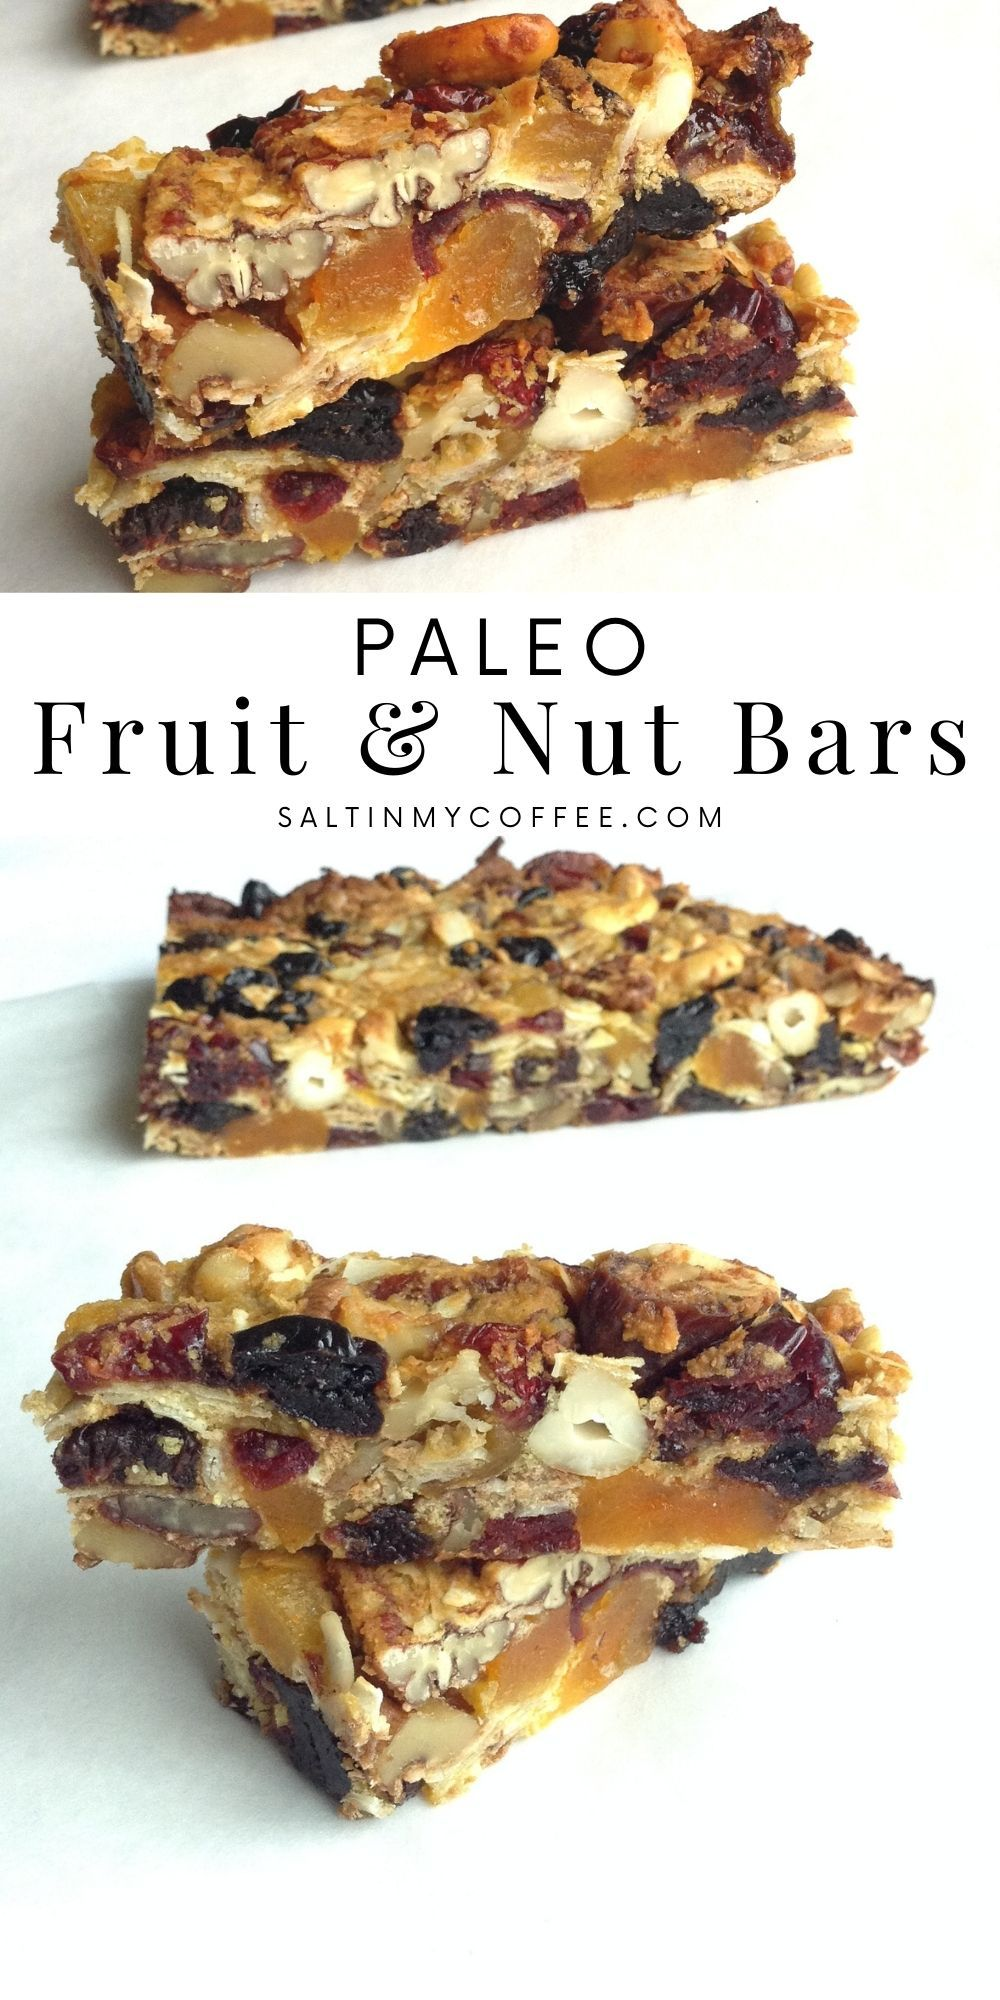 Paleo Dried Fruit And Nut Bars Recipe Fruit Bars Recipe Bars Recipes Healthy Granola Recipe Bars